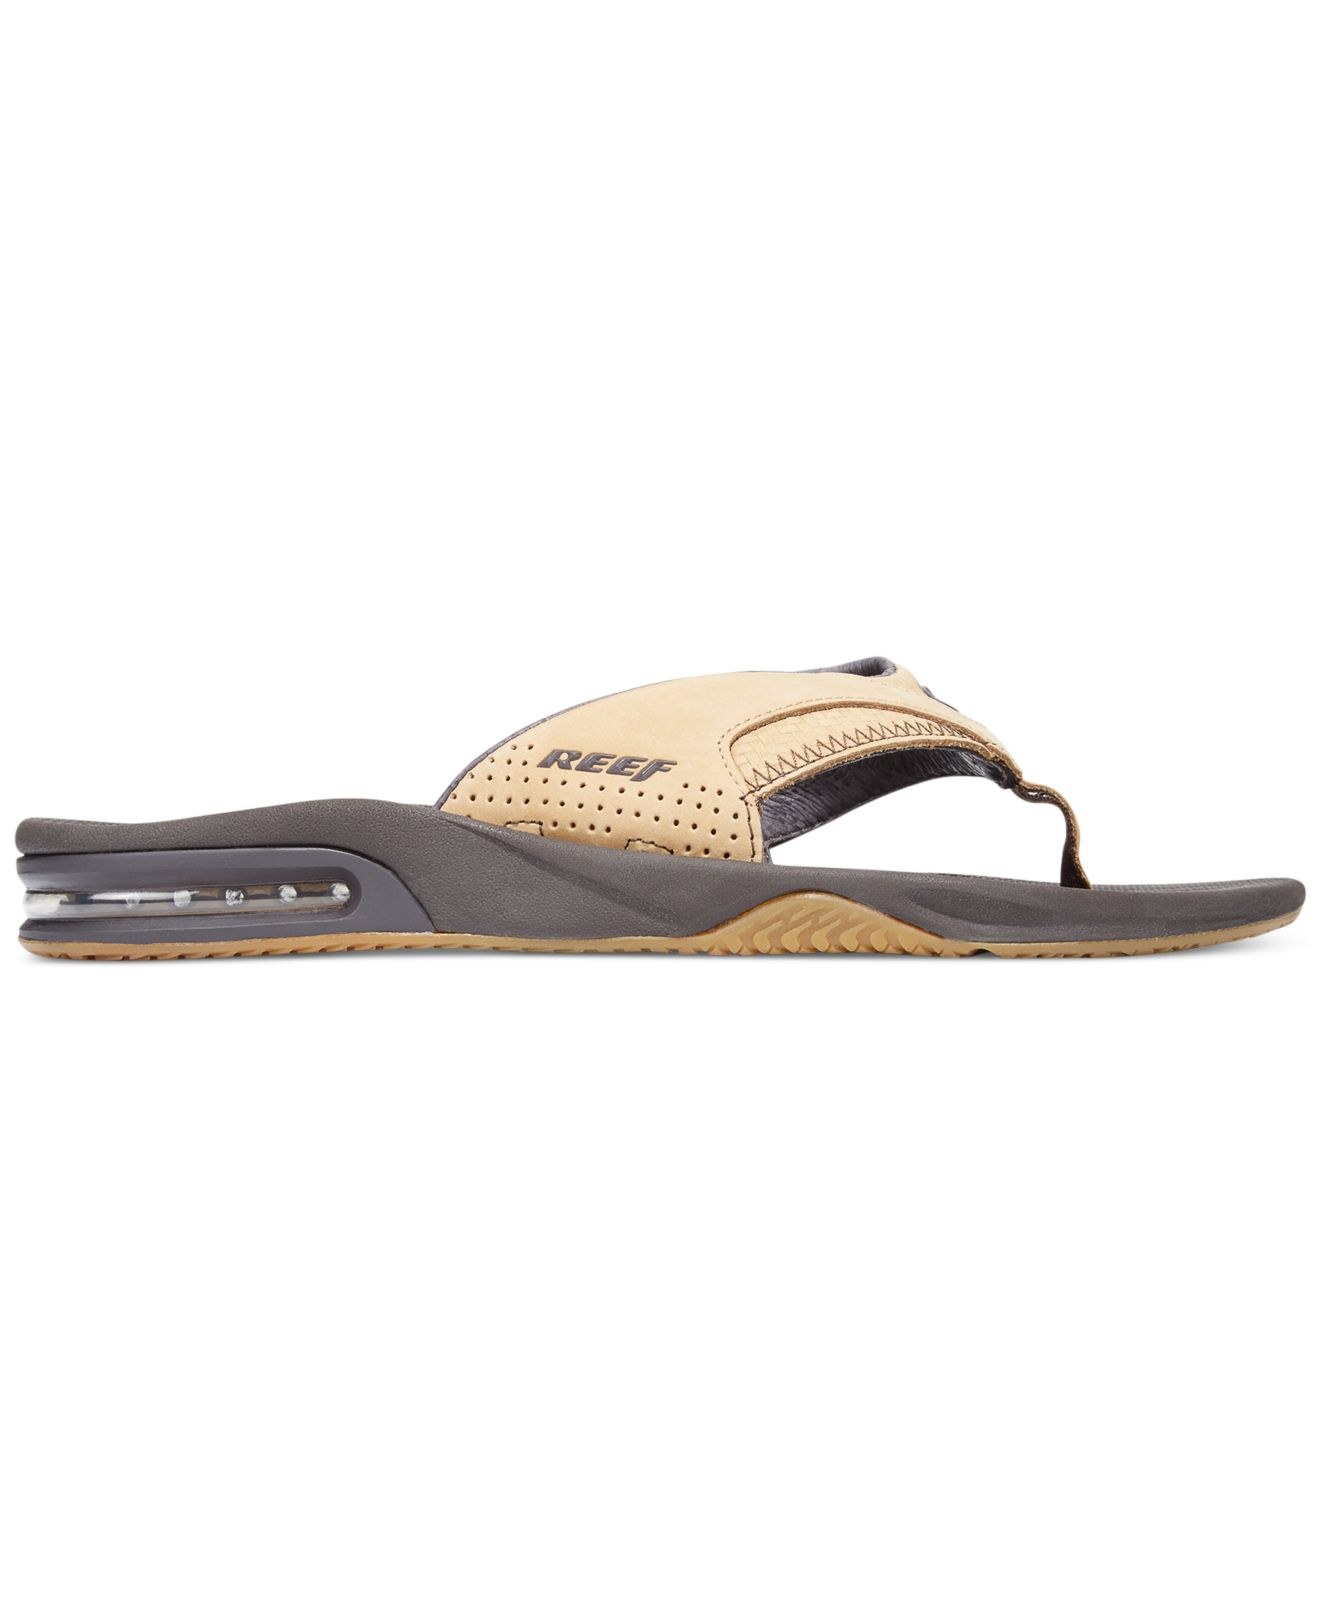 6479c33e2ded Lyst - Reef Leather Fanning Sandals in Natural for Men